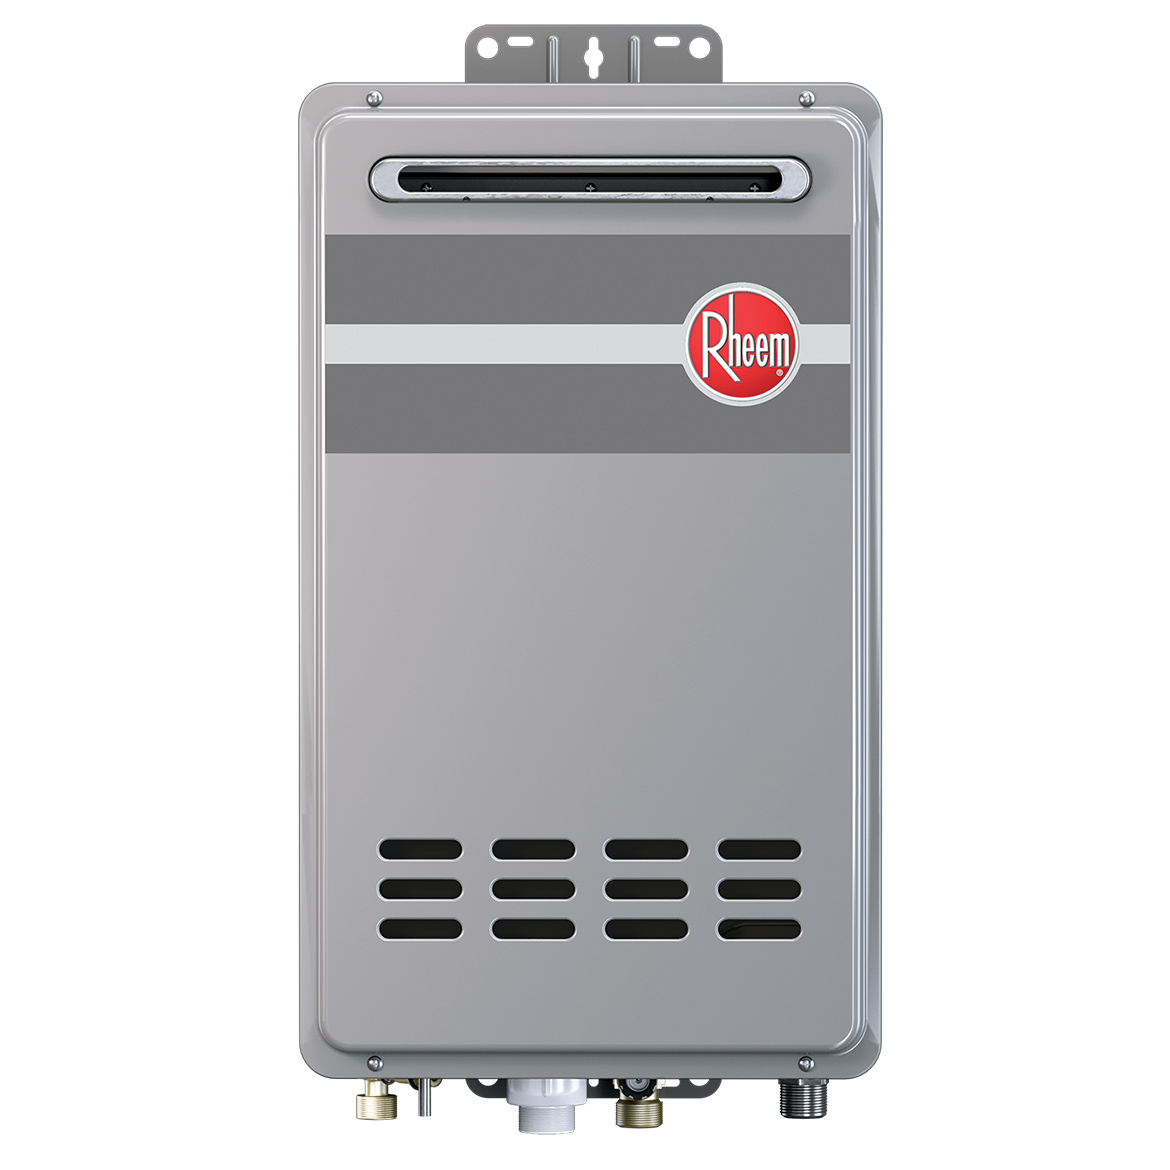 Rheem RTG-84XLN Outdoor Tankless Natural Gas Water Heater for 2 - 3 Bathroom Homes